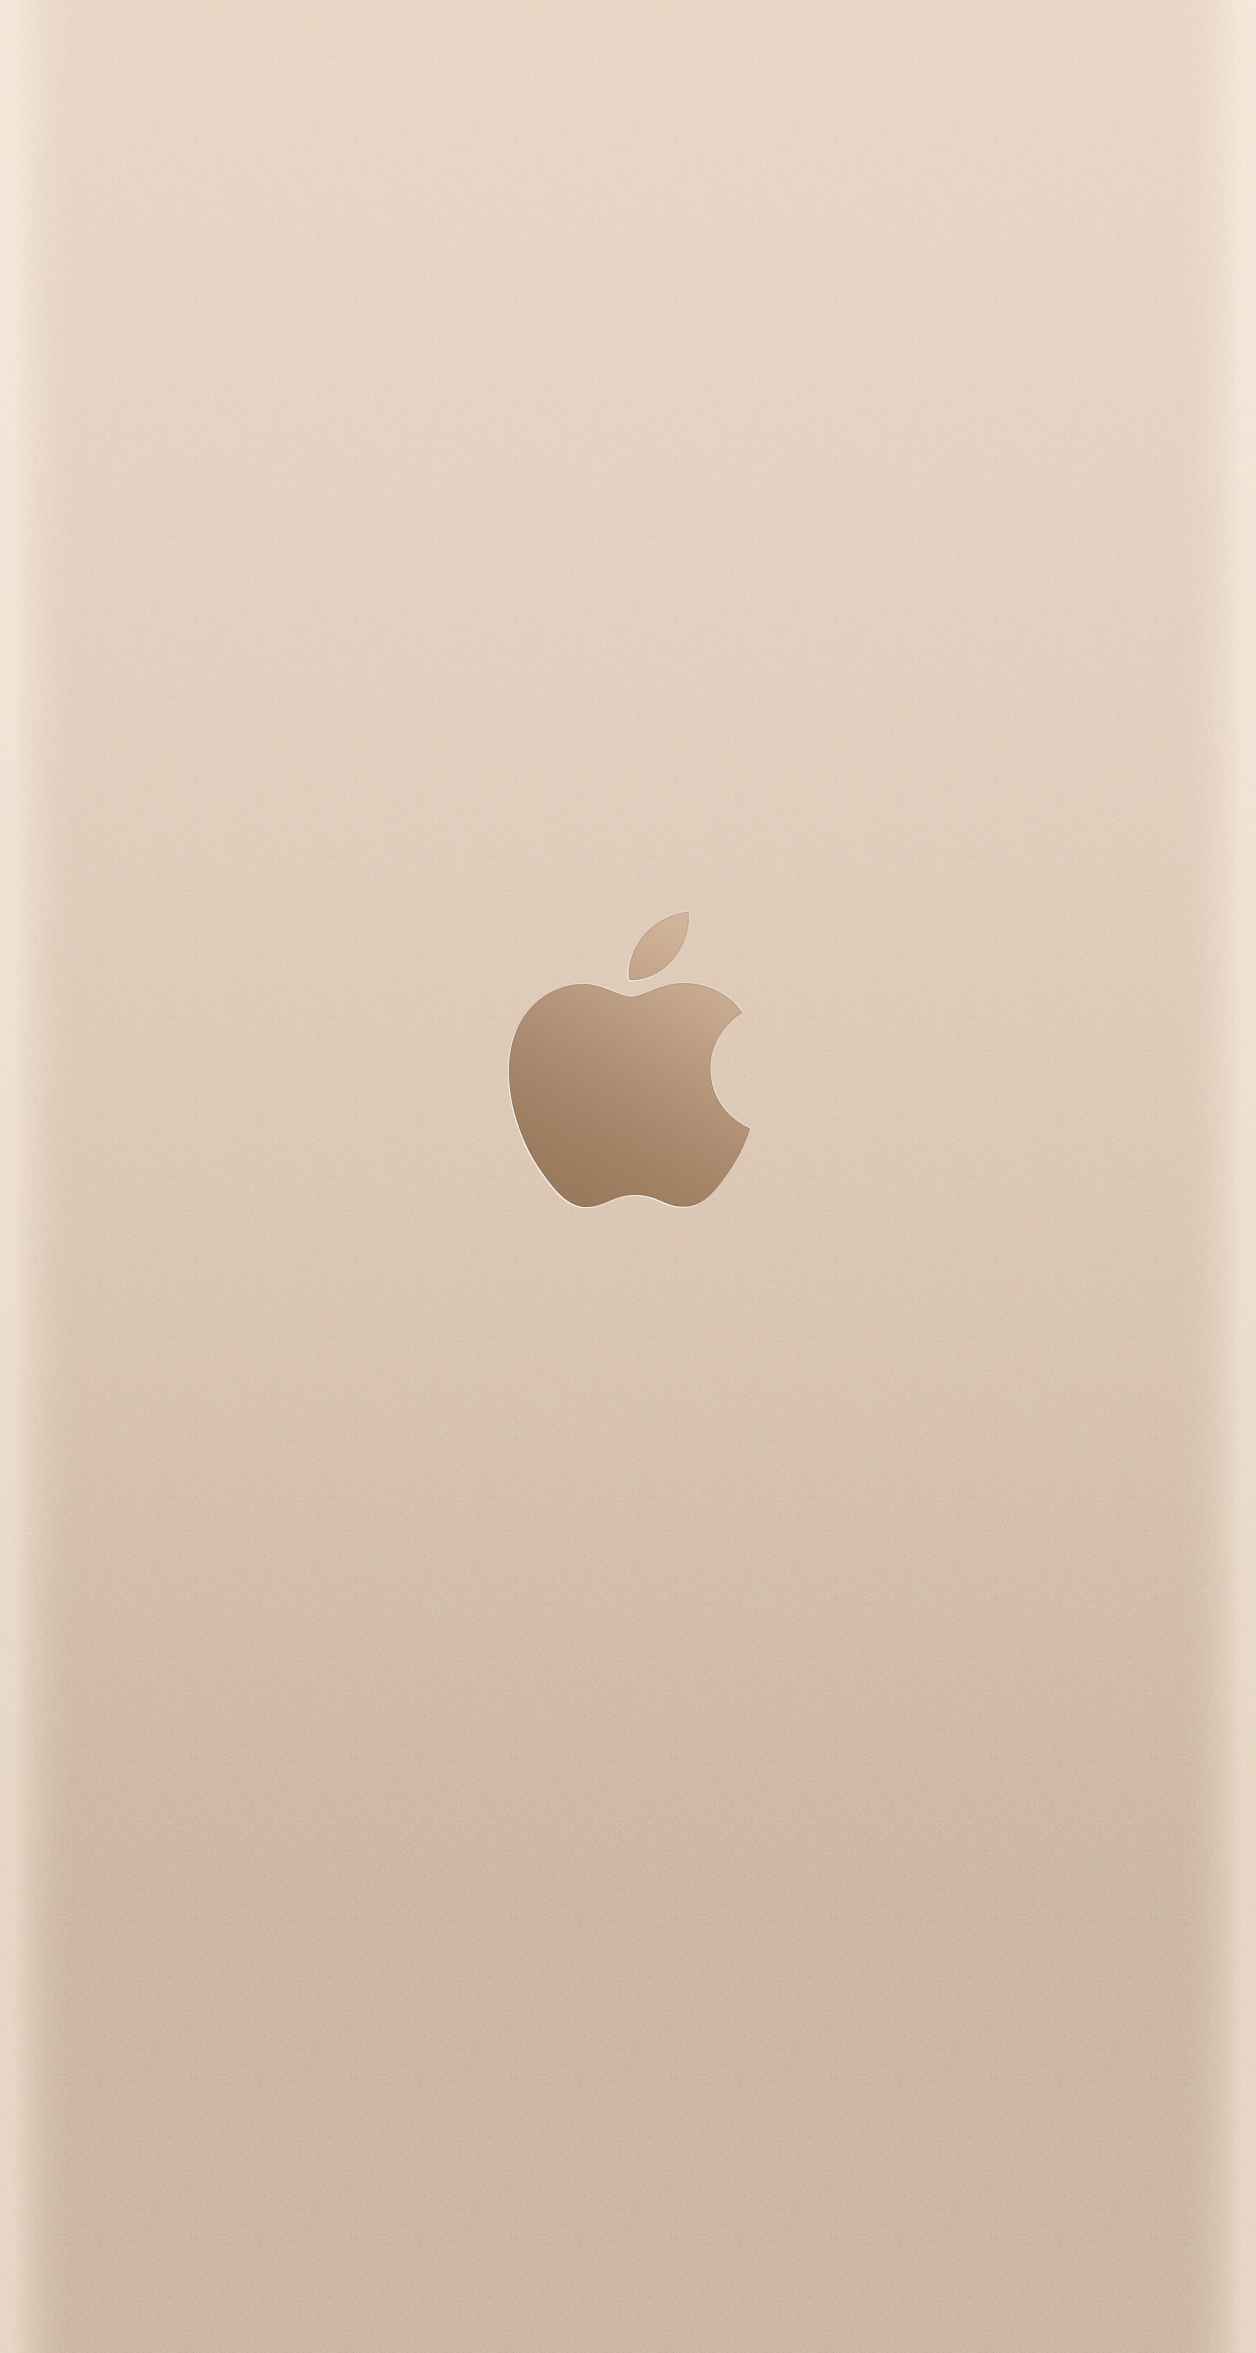 Free Download Apple Logo Wallpapers For Iphone 6 1256x2353 For Your Desktop Mobile Tablet Explore 49 Iphone 6 Wallpaper Image Size Iphone 6 Wallpaper Hd Live Wallpaper For Iphone 6 How To Make Iphone Wallpaper